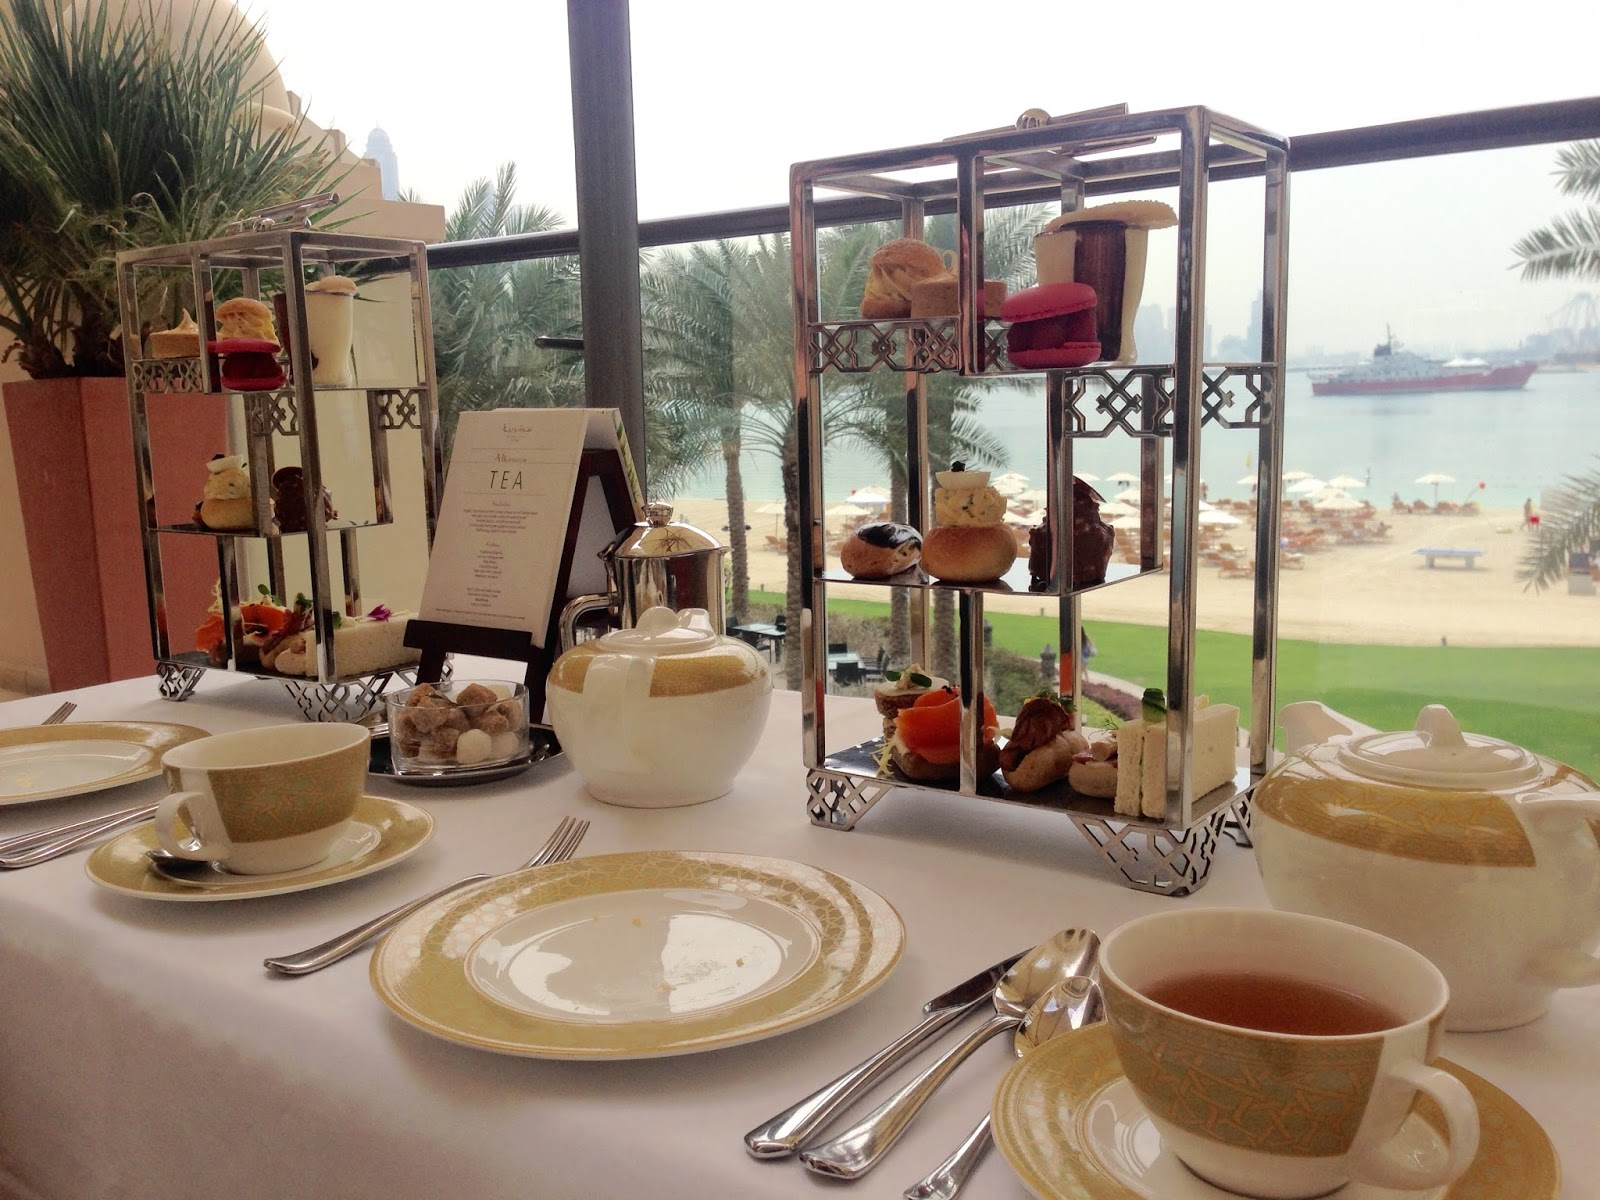 Afternoon tea at Fairmont The Palm Dubai